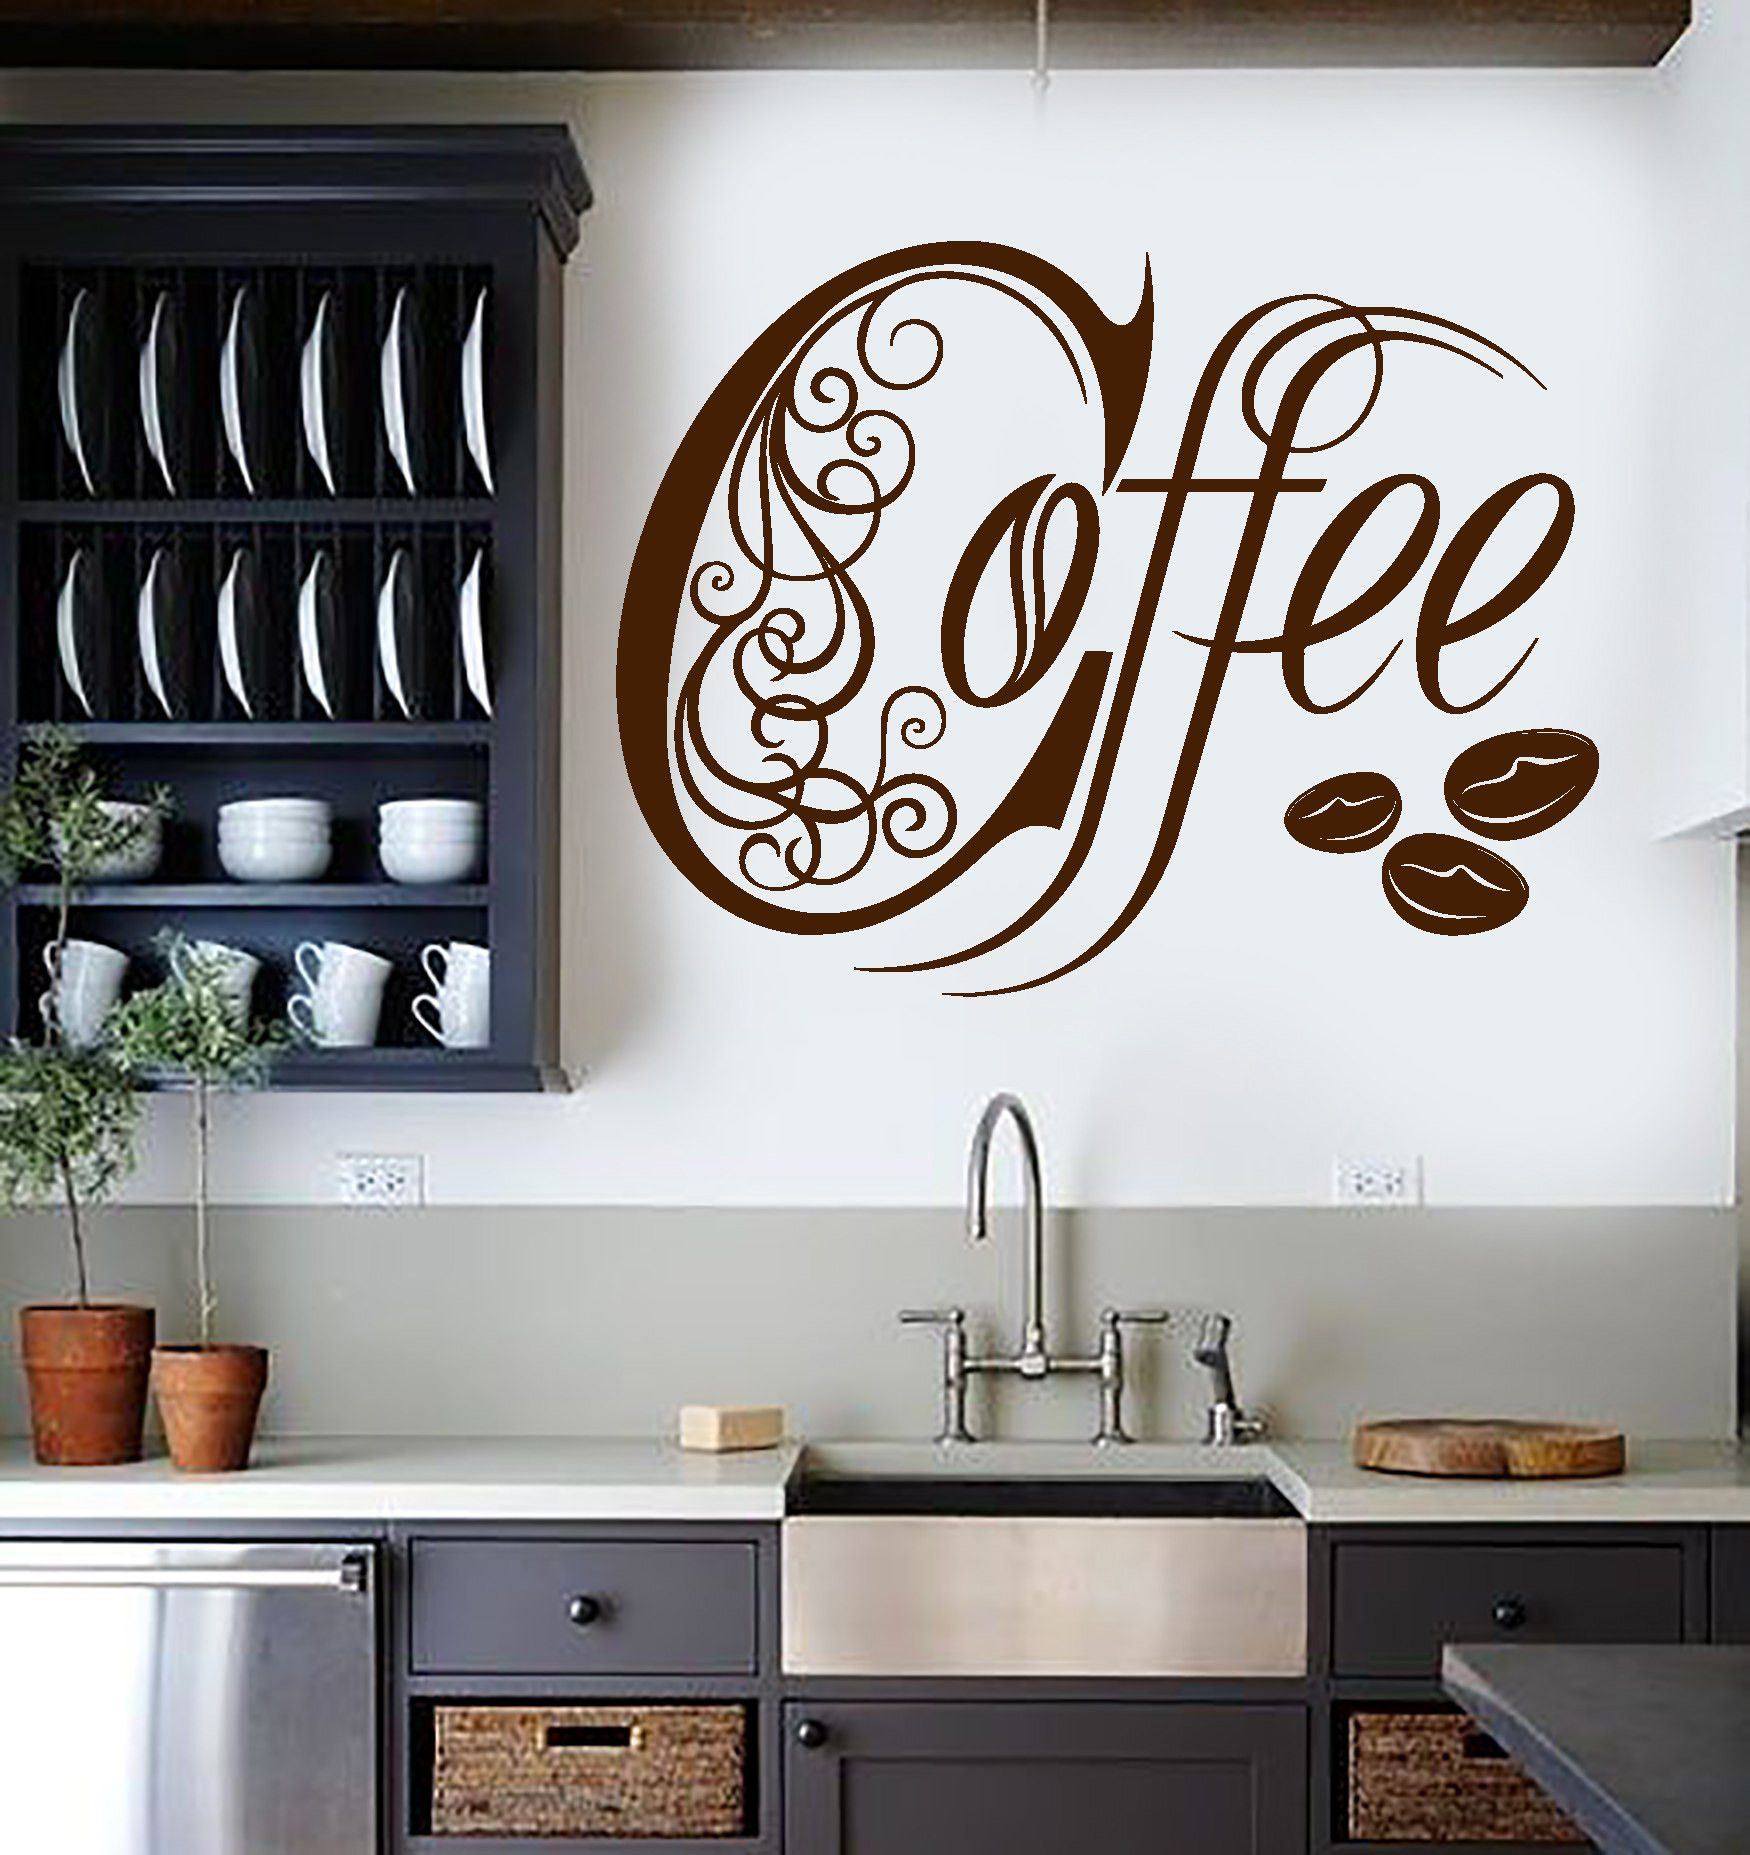 Vinyl wall decal kitchen coffee shop house cafe decor for Mural coffee shop